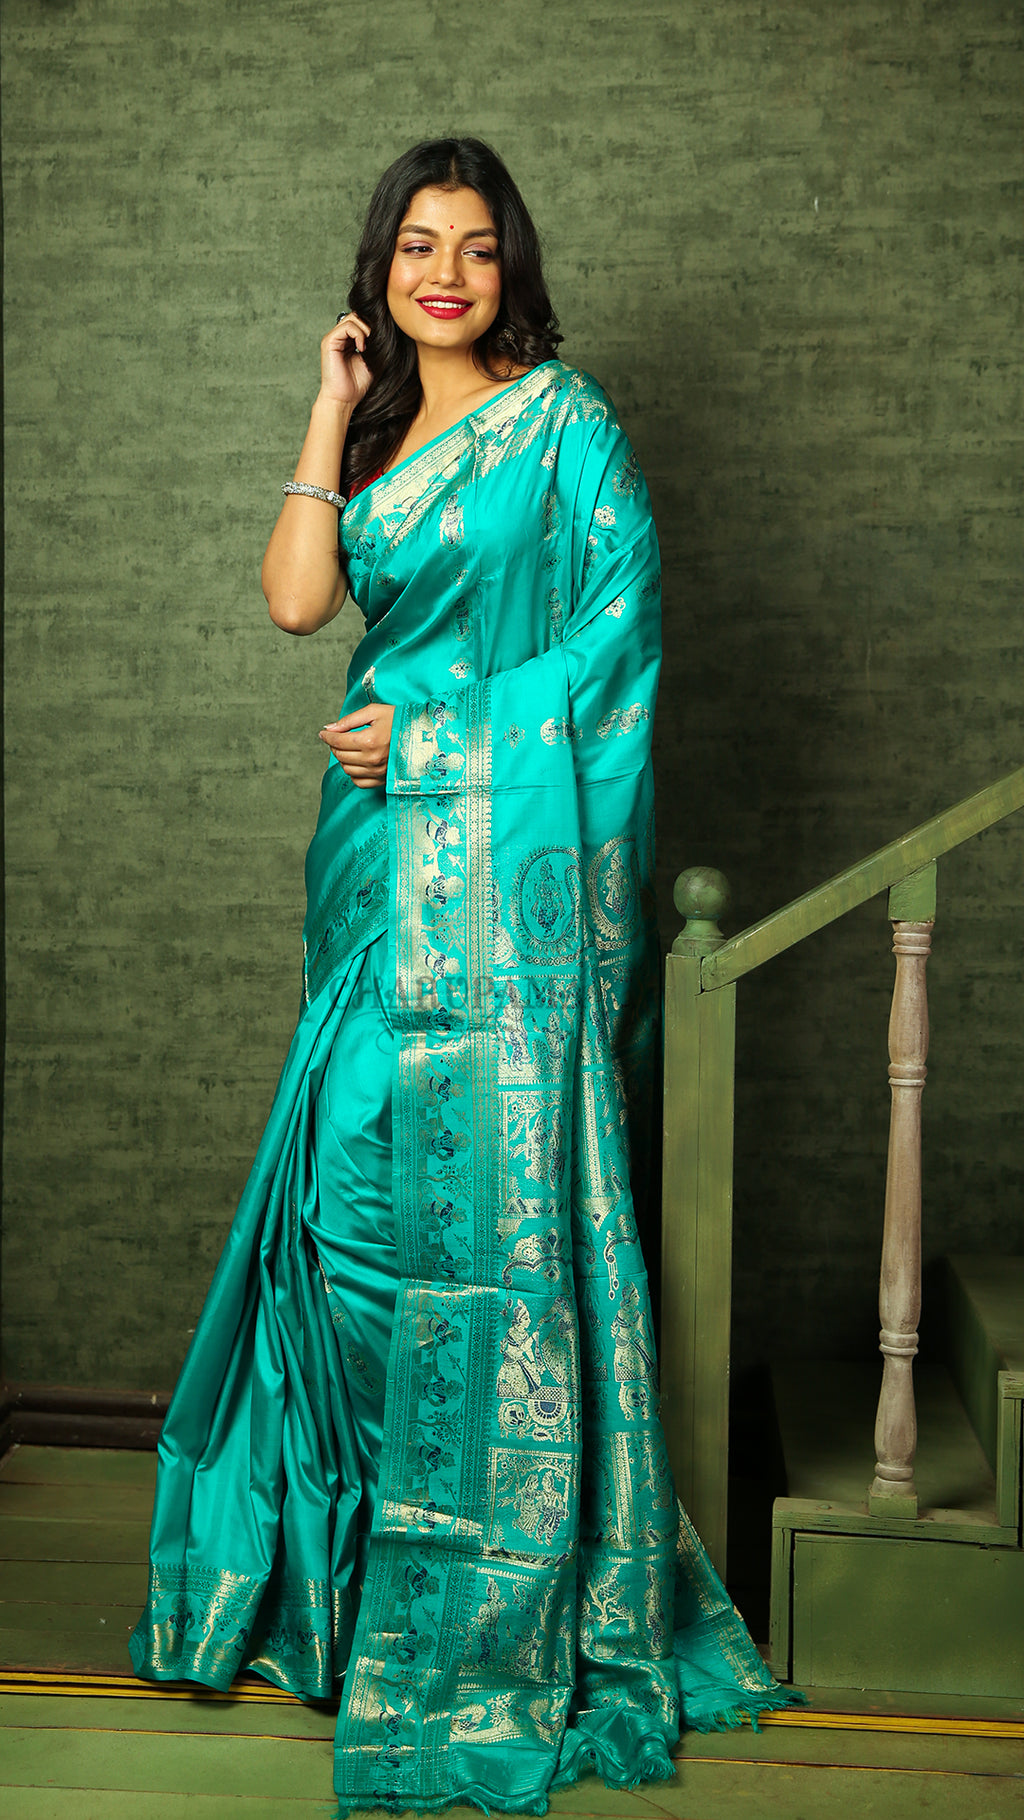 Cyan Blue Swarnachari With Silver Zari Figure Motif Weaving